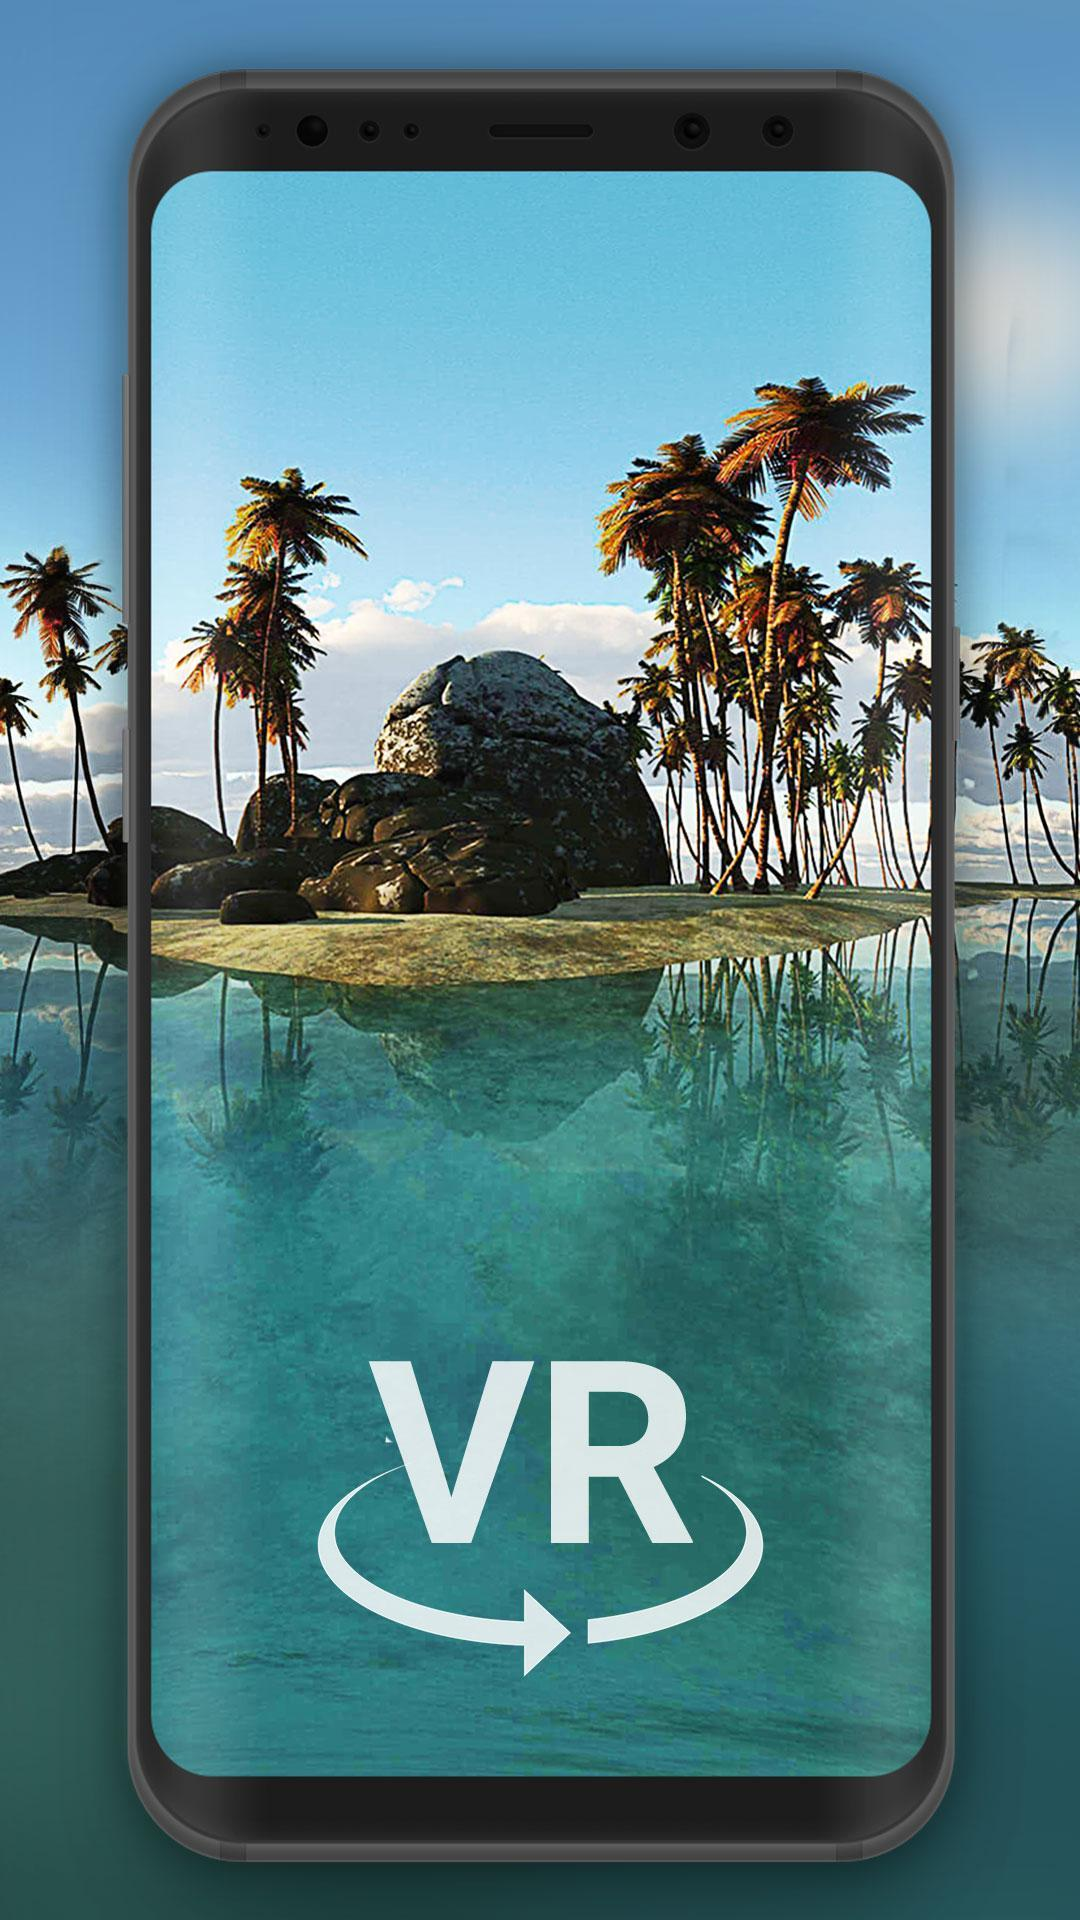 Live Wallpaper Vr Style 360 Degree For Android Apk Download